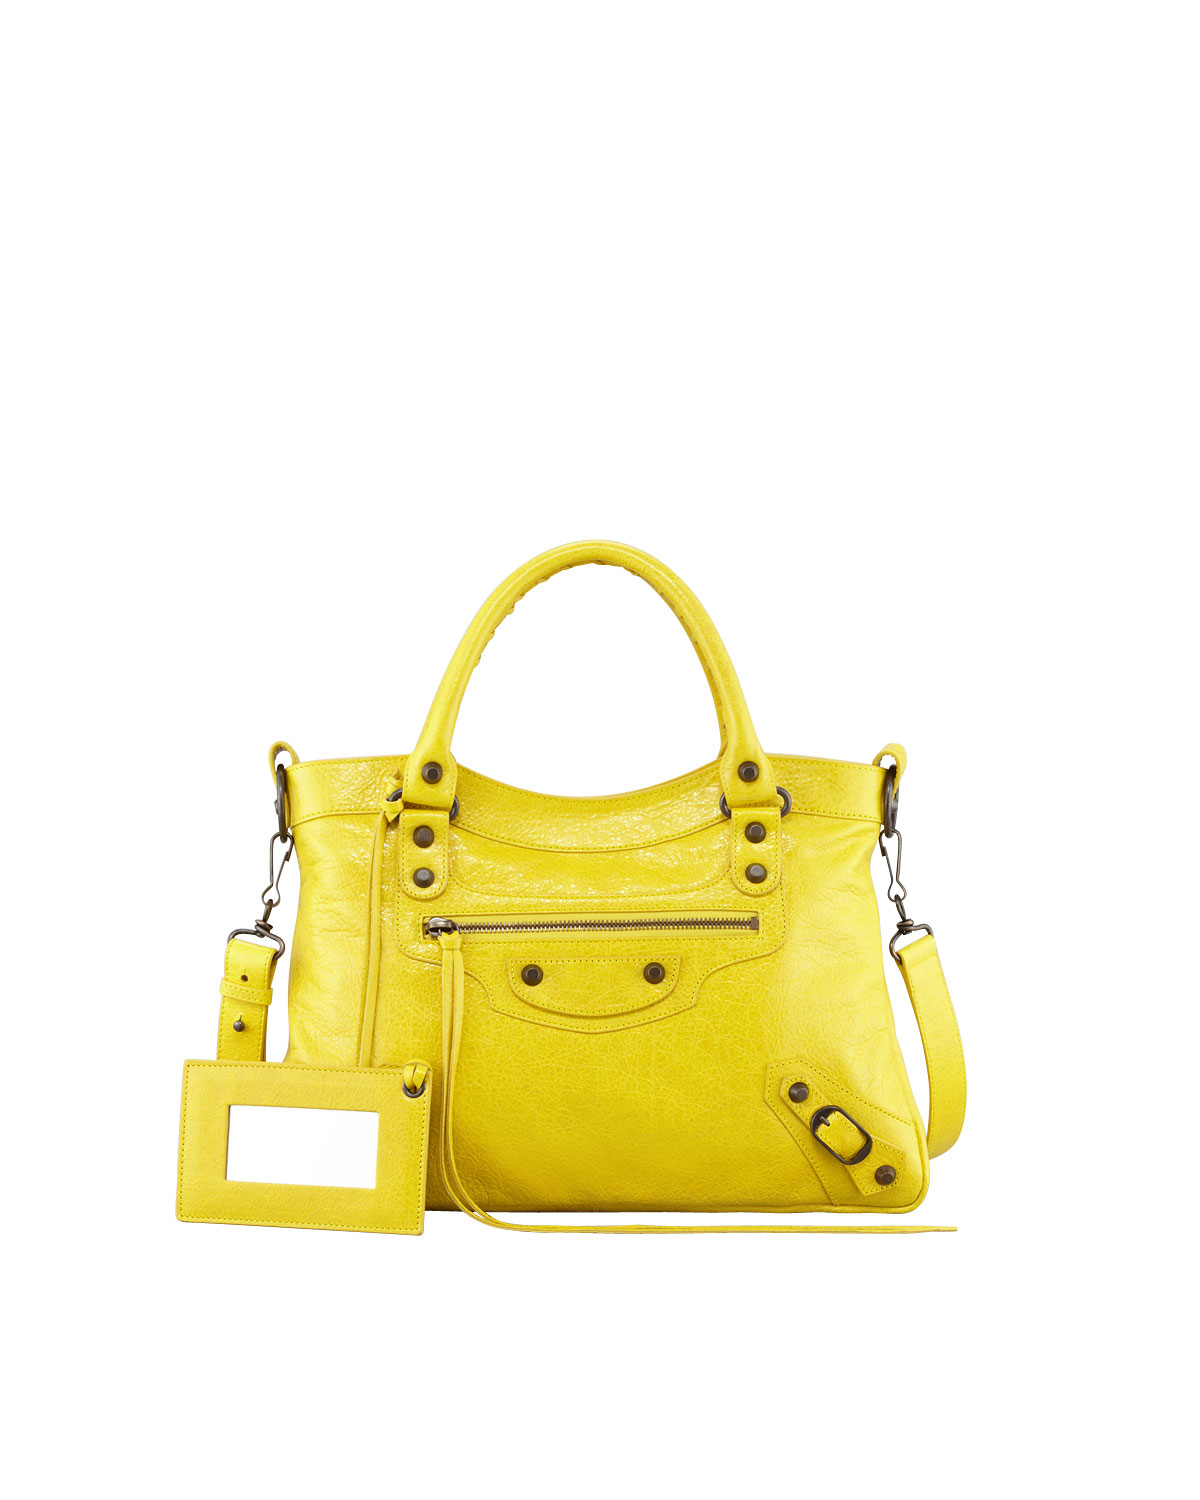 86edc56c961cf1 Balenciaga Town Bag In Curry | Stanford Center for Opportunity ...